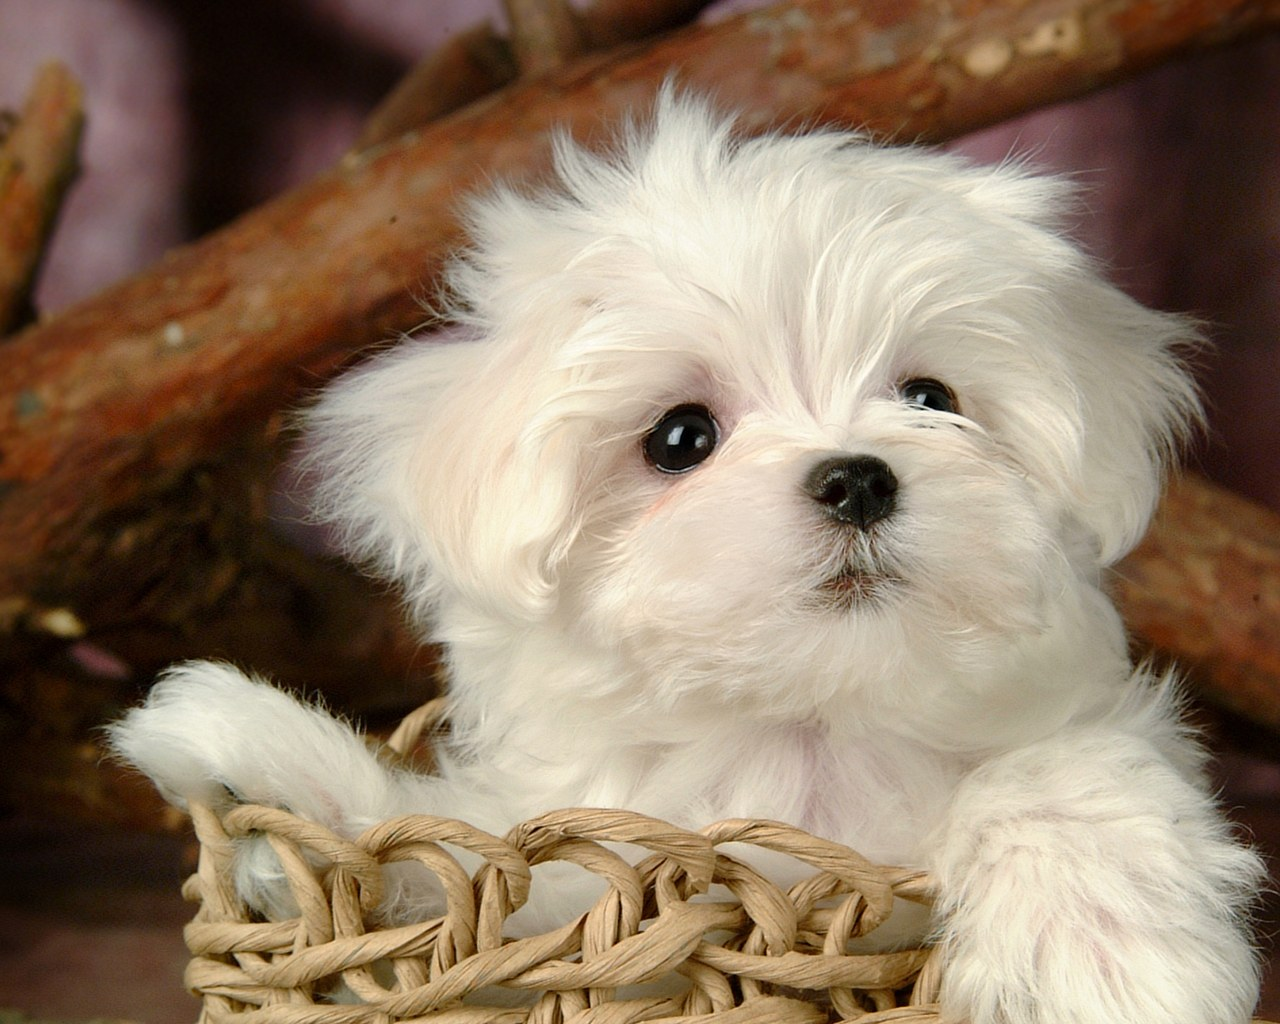 Fluffy Maltese Puppy Dogs - White Maltese Puppies wallpapers